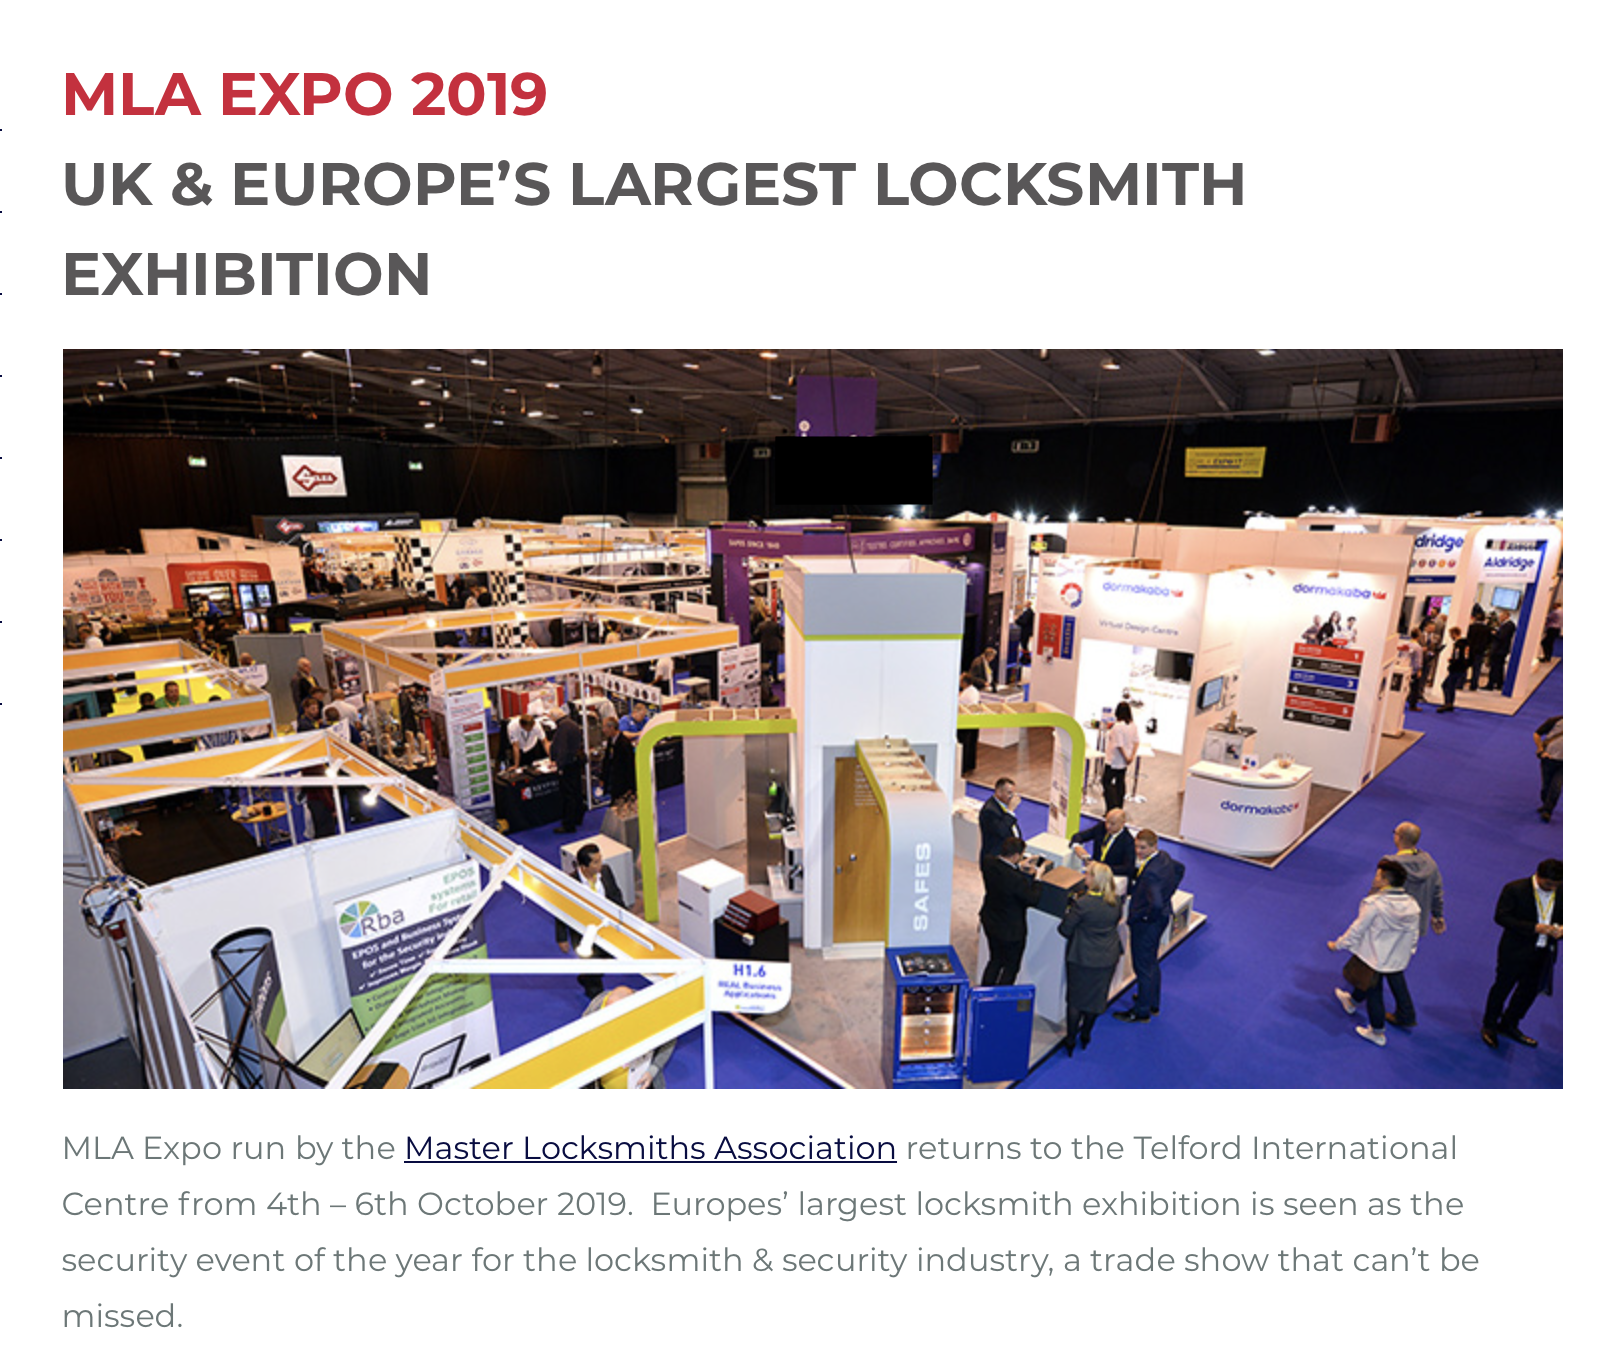 Securikey exhibiting at the MLA Expo this October - Securikey